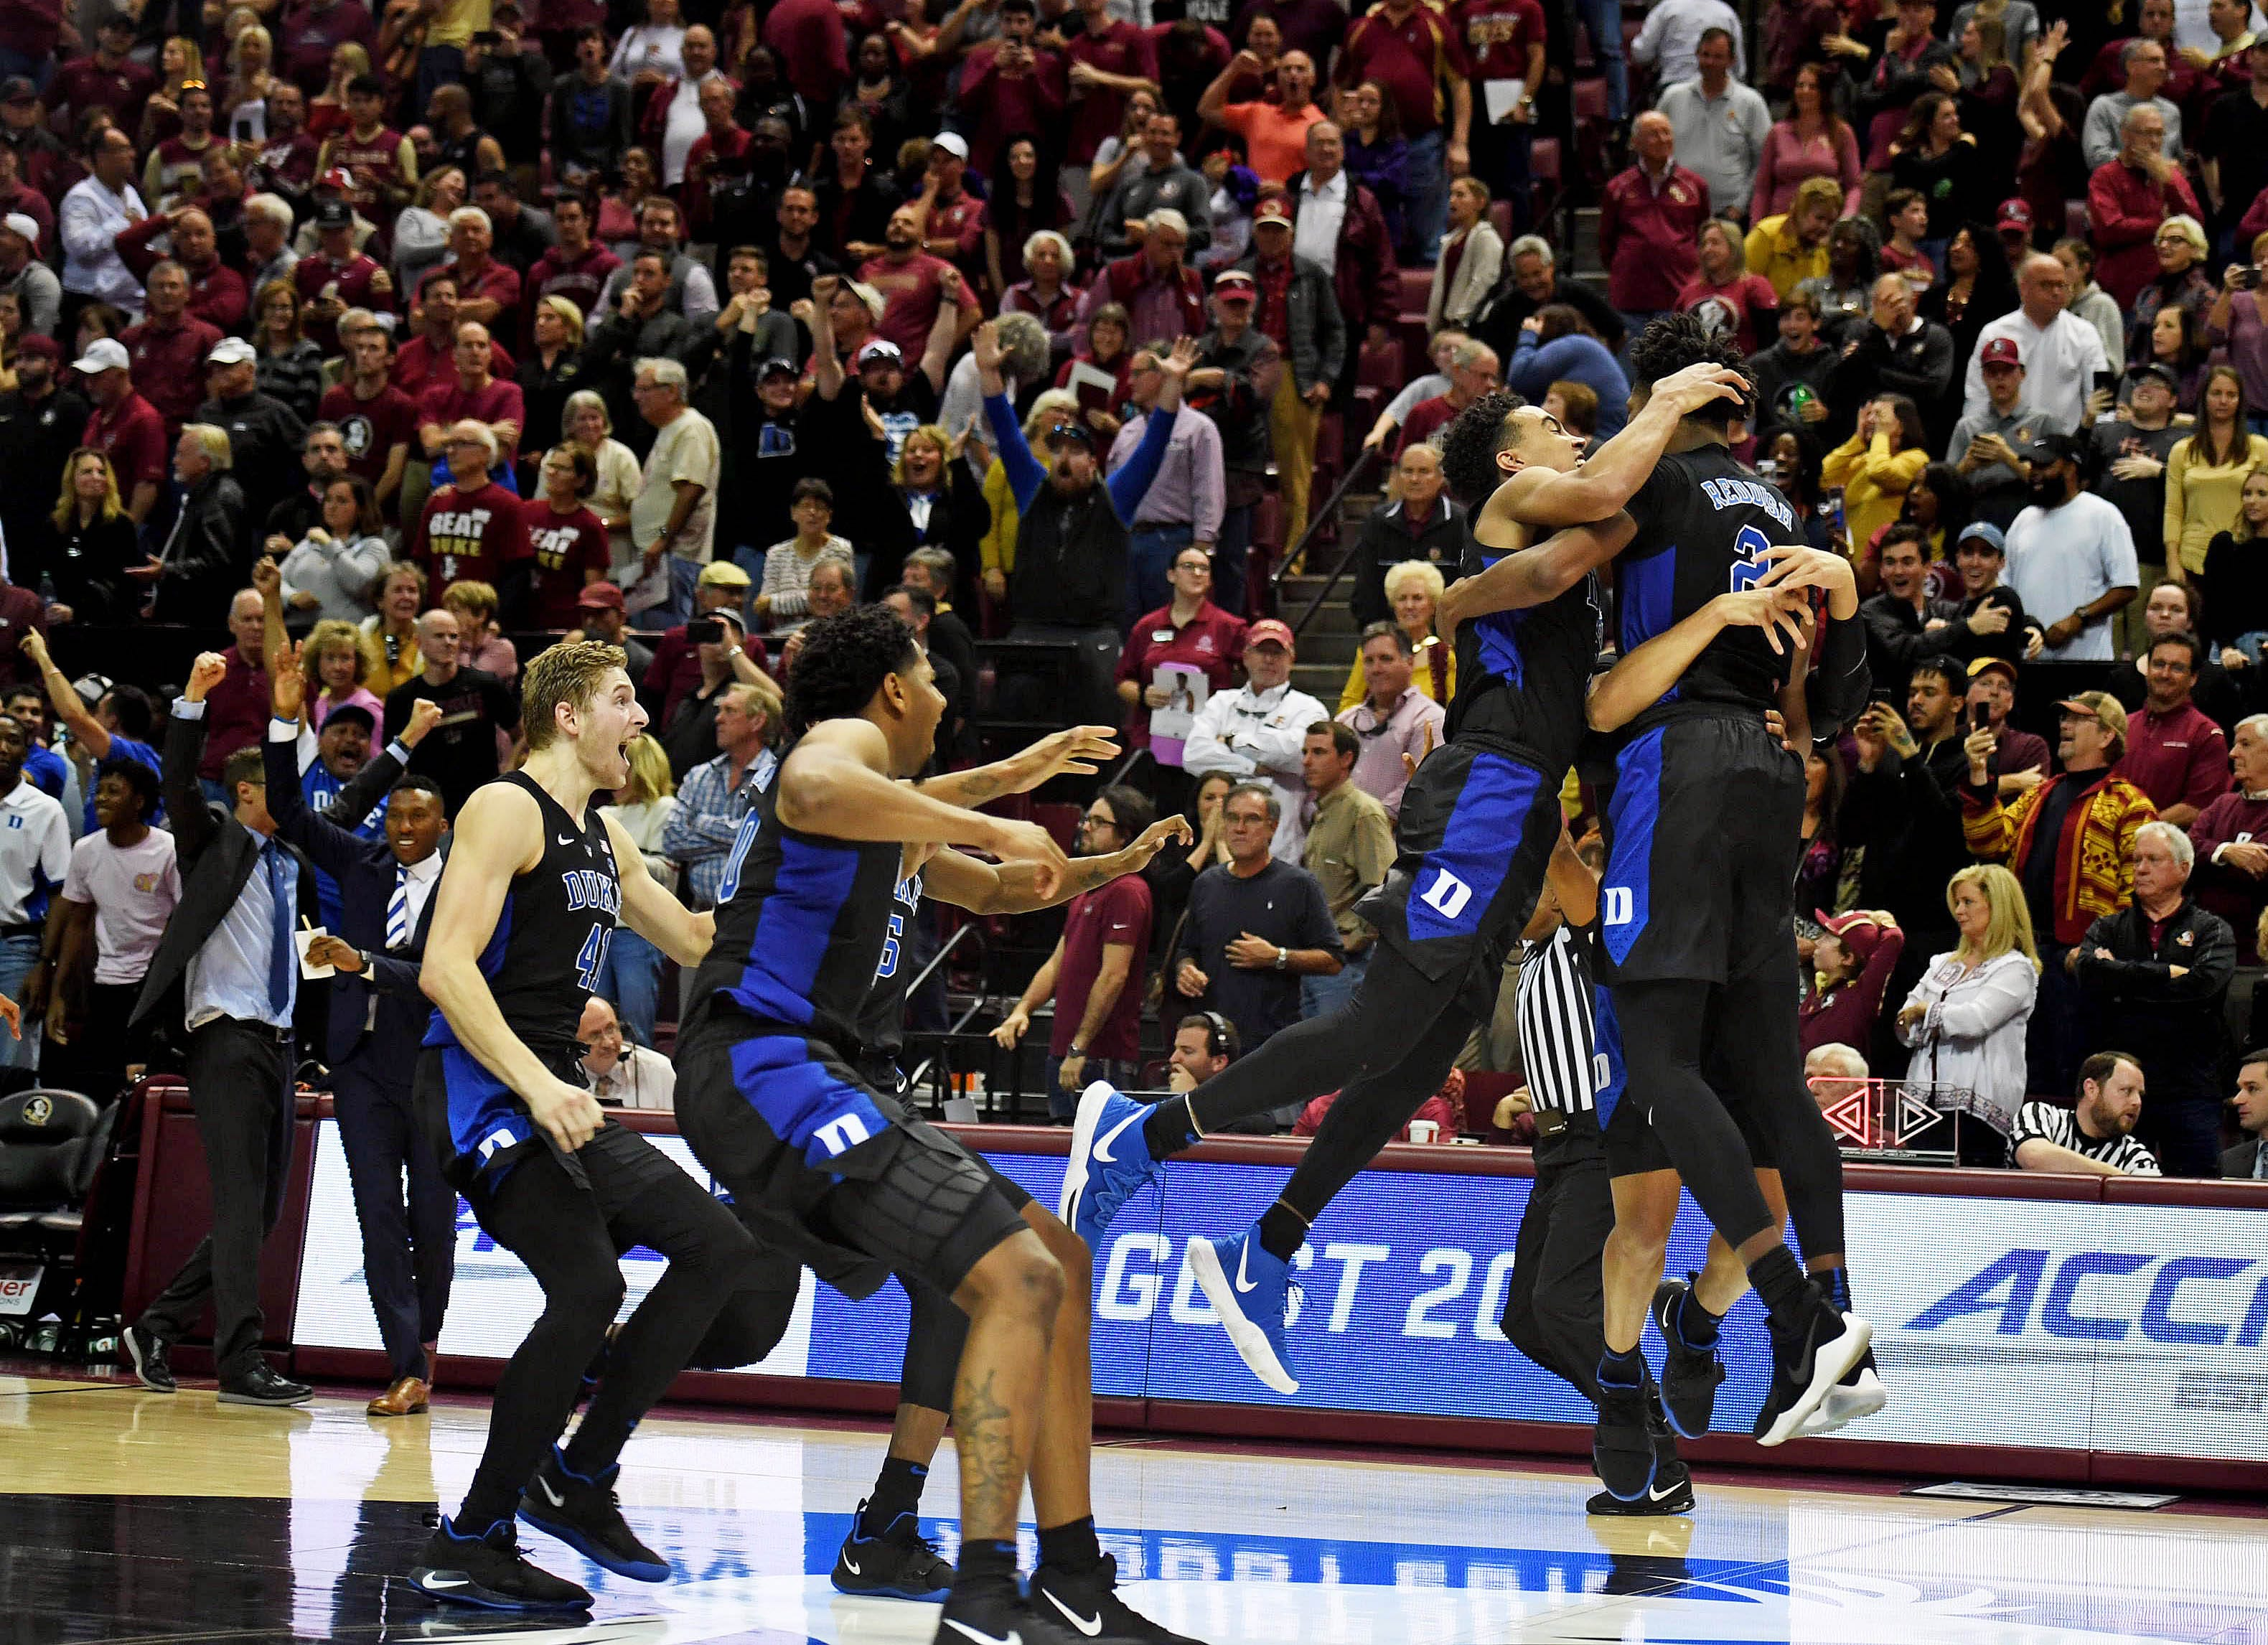 No. 2 Duke survives at Florida State with last-second shot by unsung freshman hero